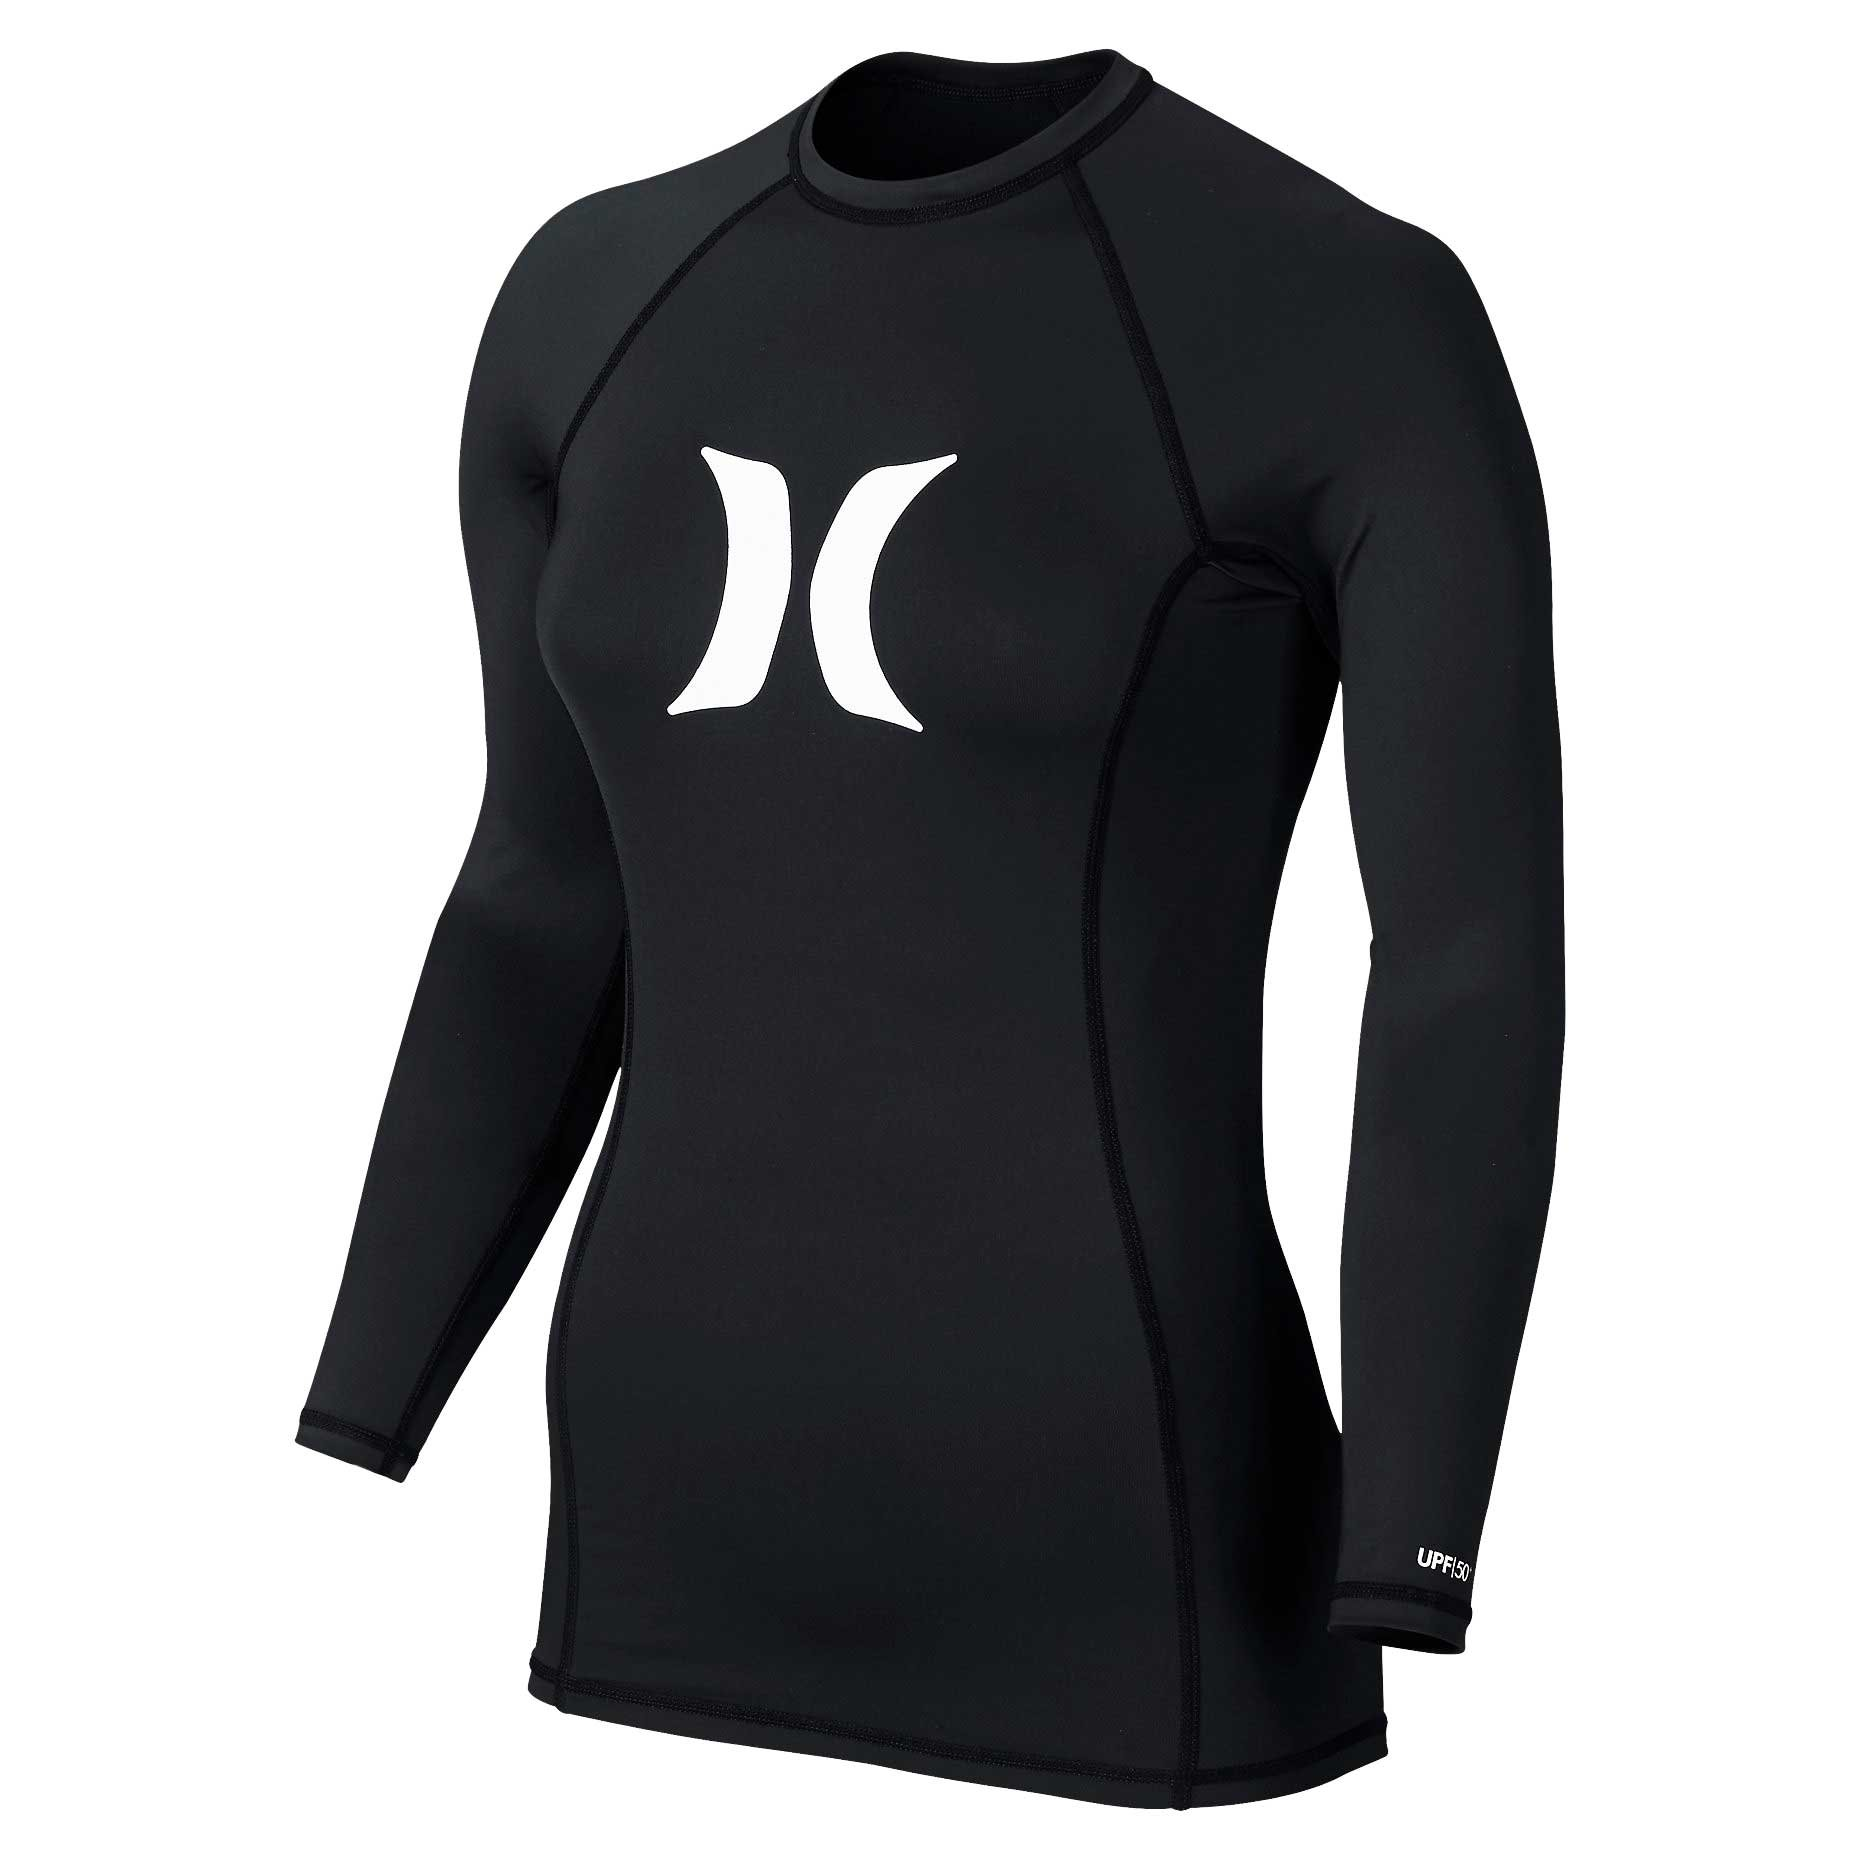 Hurley Women's One & Only LS Rash Guard - Black - M